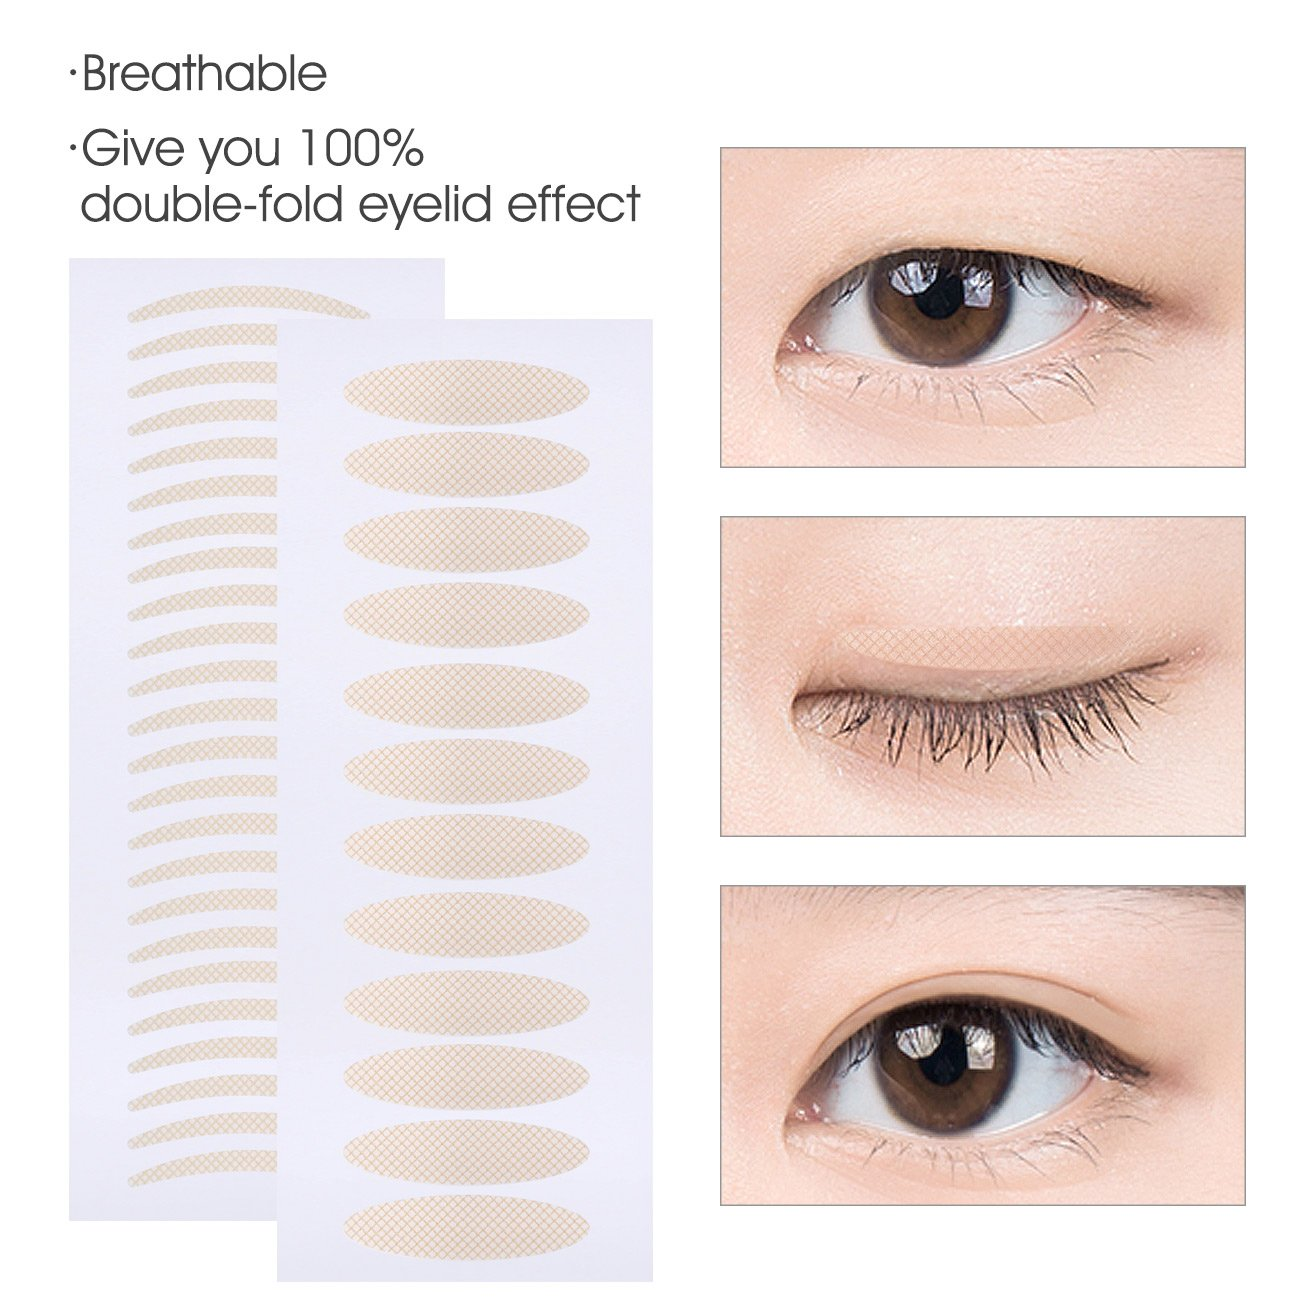 Breathable Double Eyelid Tape Stickers Beauty Tool Fiber Fishnet Texture - 120 Pairs Slim + 120 Pairs Wide Double Eyelid Tape, Perfect for Hooded, Droopy, Uneven, or Mono-eyelids